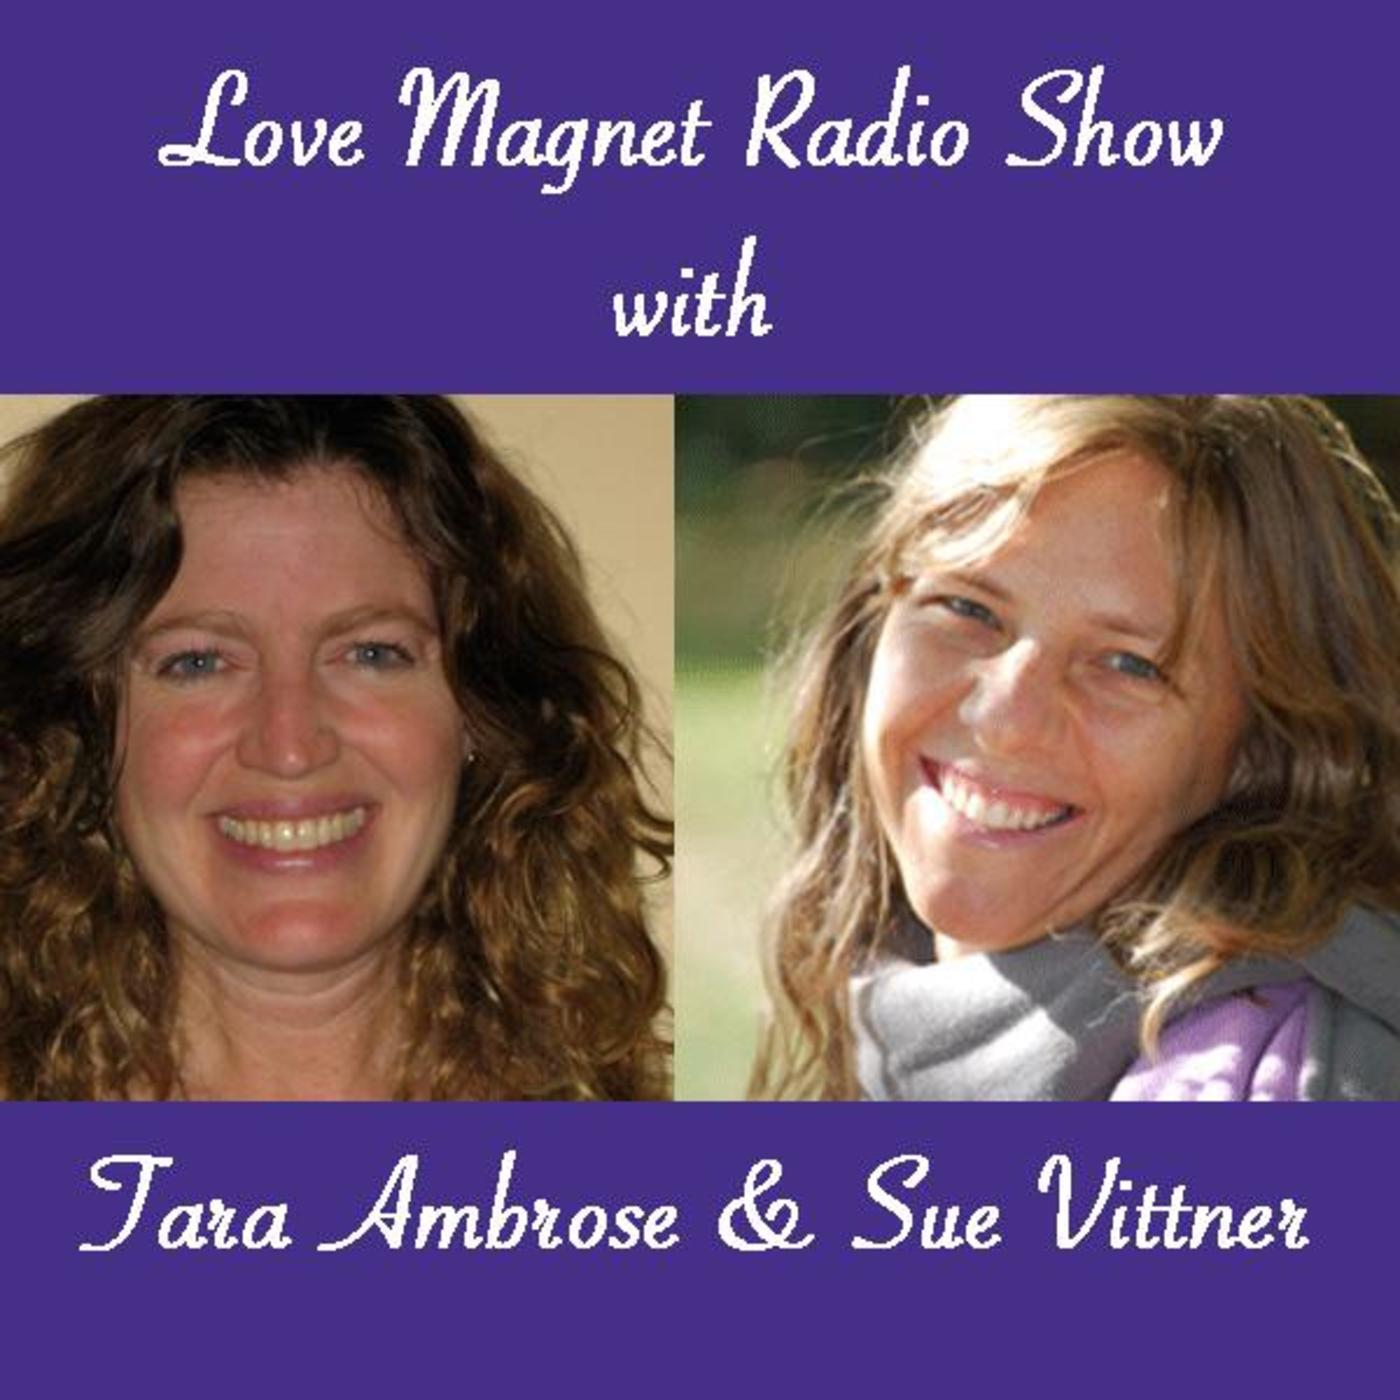 Love Magnet Radio Show